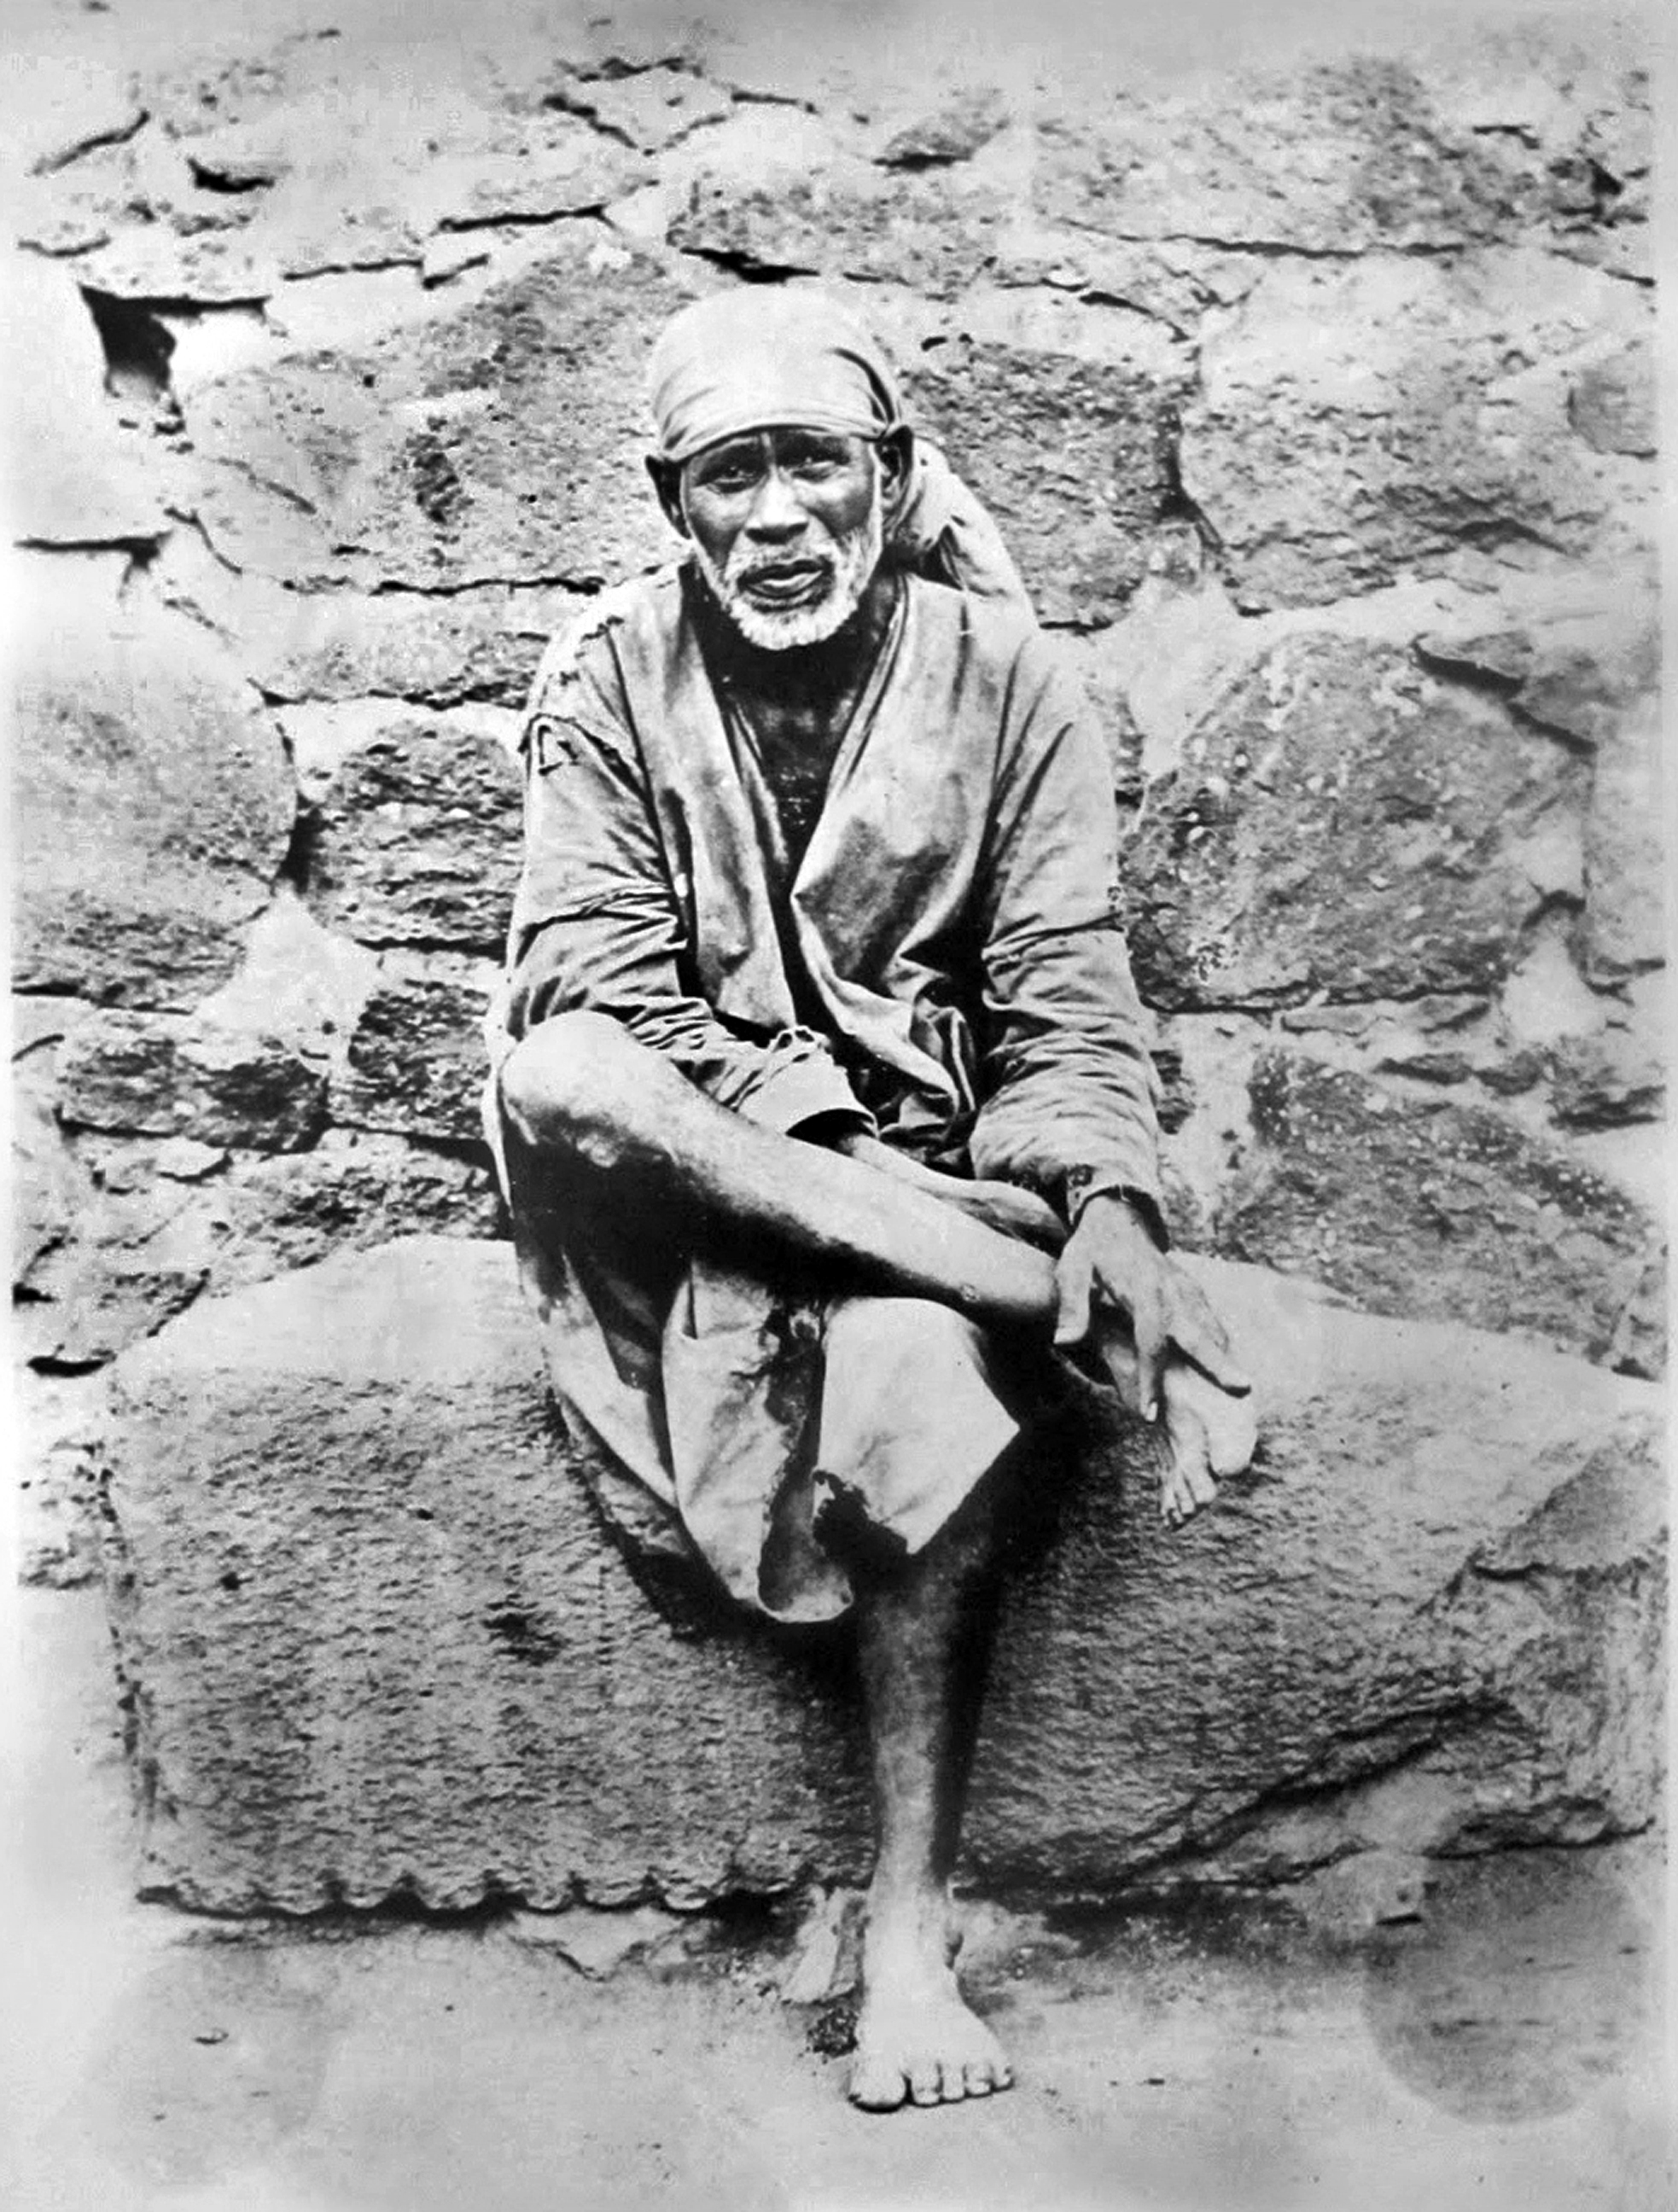 Photo originale de Shirdi Sai Baba haute résolution